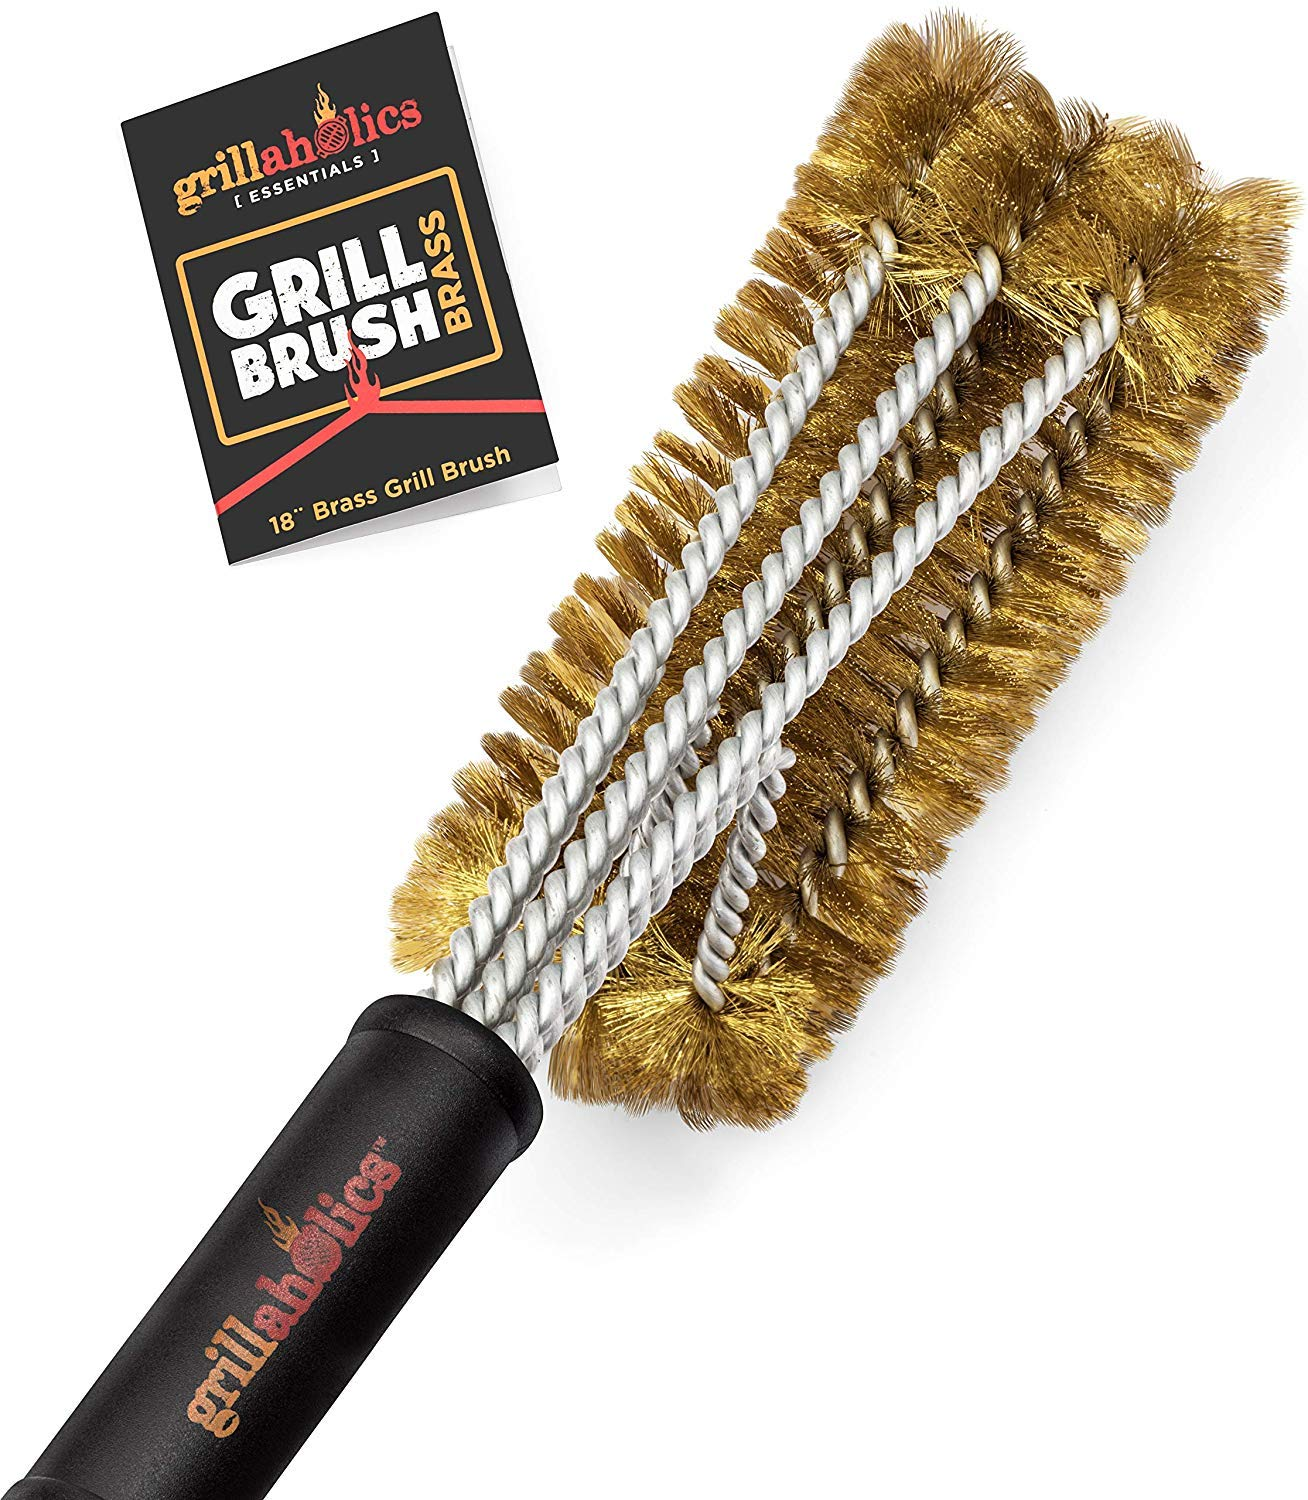 Grillaholics Essentials Brass Grill Brush - Softer Brass Bristle Wire Grill Brush for Safely Cleaning Porcelain and Ceramic Grates - Lifetime Manufacturer's Warranty